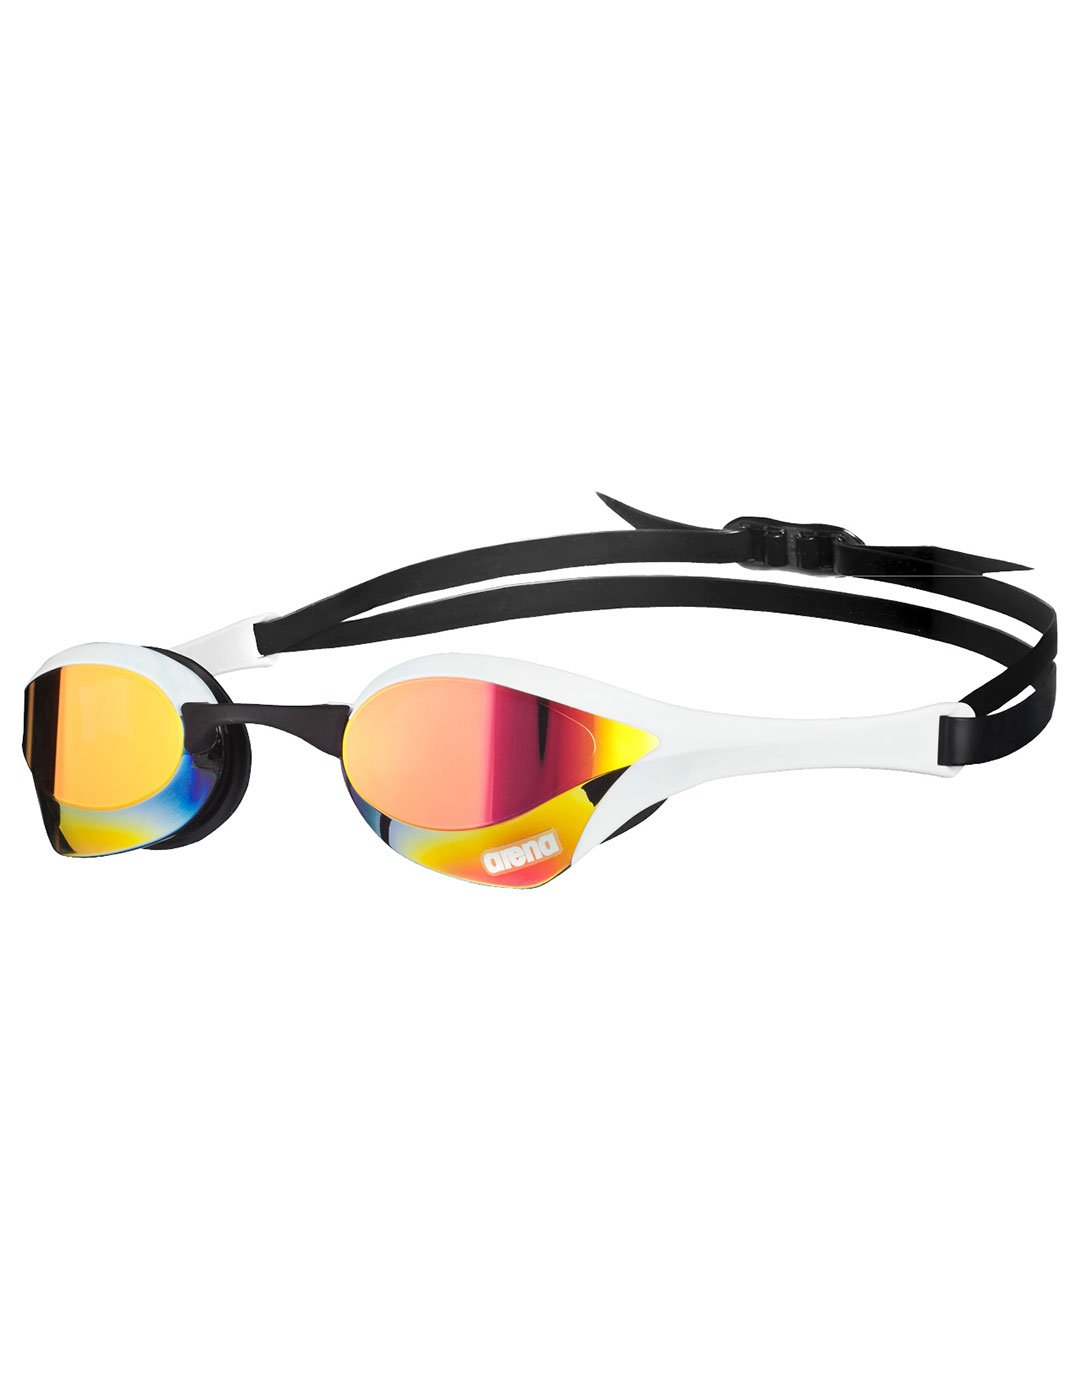 53667f0da9d2 Arena Cobra Ultra Mirror Goggle - Red Revo White ...